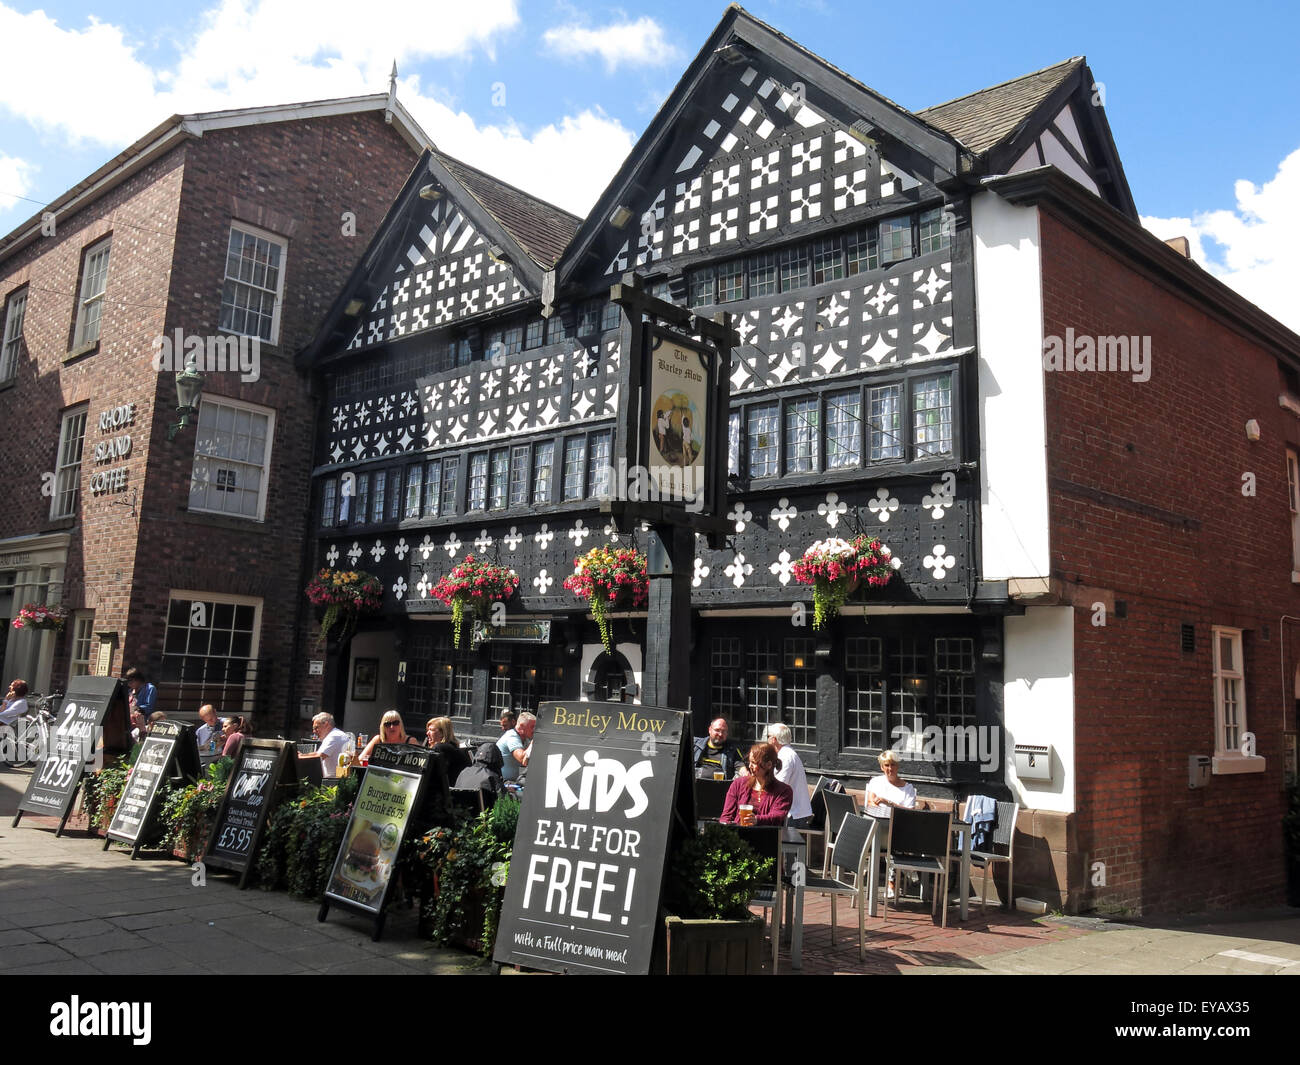 oldest,bar,united,kingdom,GB,Great Britain,history,historic,pint,beer,bitter,drink,drinkers,with,Square,Marketplace,Timber,Framed,Tudor,Cheshire,England,UK,listed,building,I,Grade1,one,timber-framed,public,house,black,white,quatrefoils,red,sandstone,plinth,jettied,gable,Golden Square,Grade One,GoTonySmith,tavern,pubsign,sign,BarleyMow,WA1,WBC,Borough,Council,wood,wooden,Landscape,Buy Pictures of,Buy Images Of,Market Place,Kids eat Free,Barley Mow Public House,Grade2 Listed